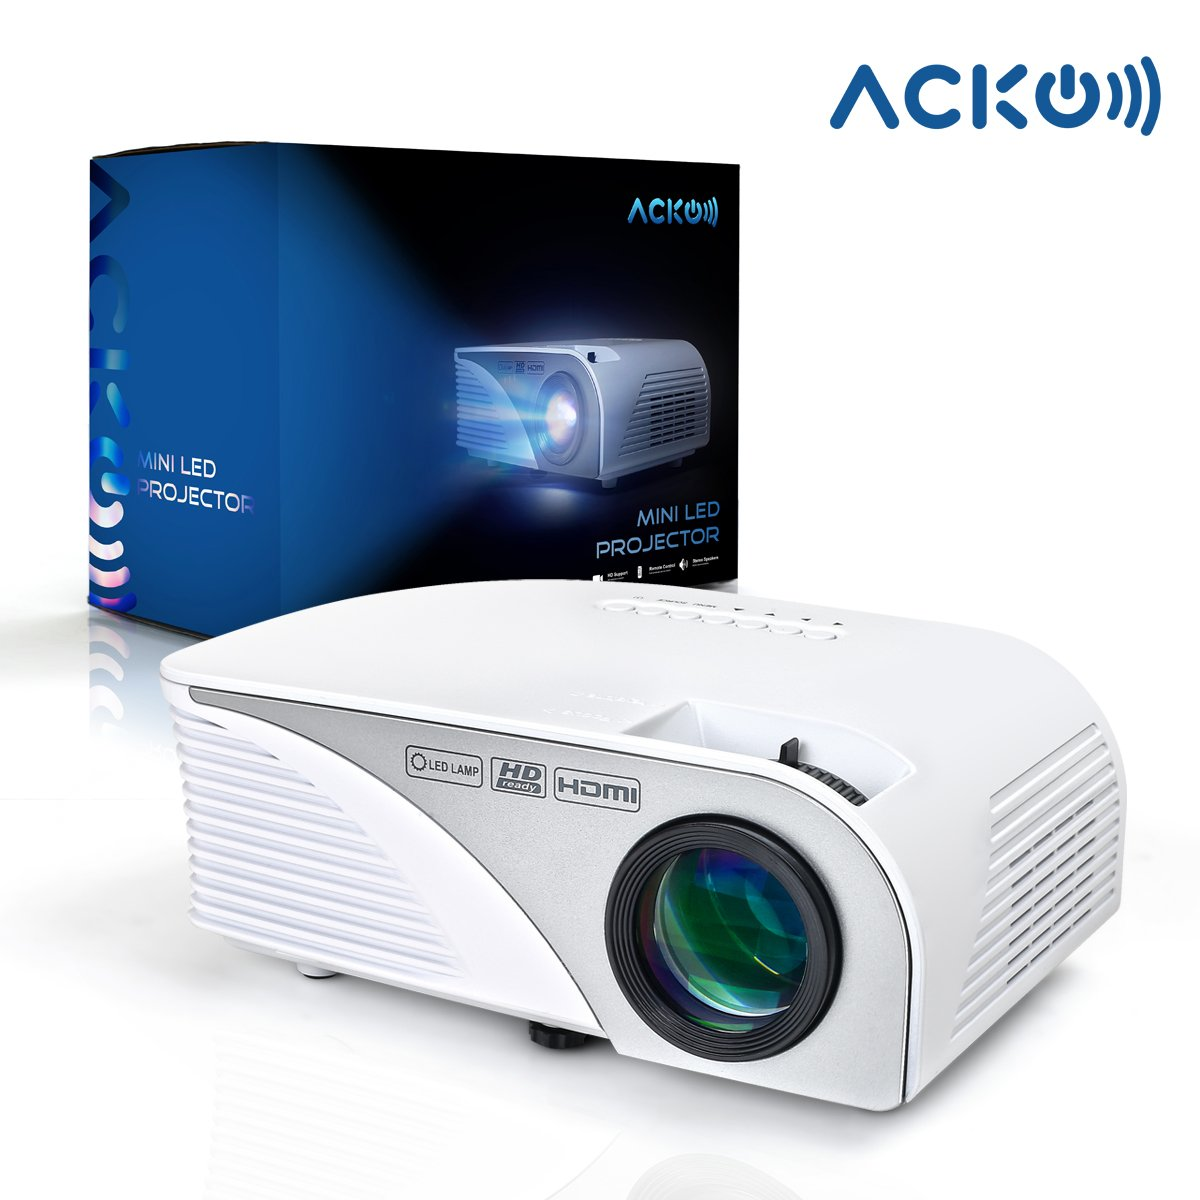 Acko portable mini hd led video projector review office for Portable projector reviews